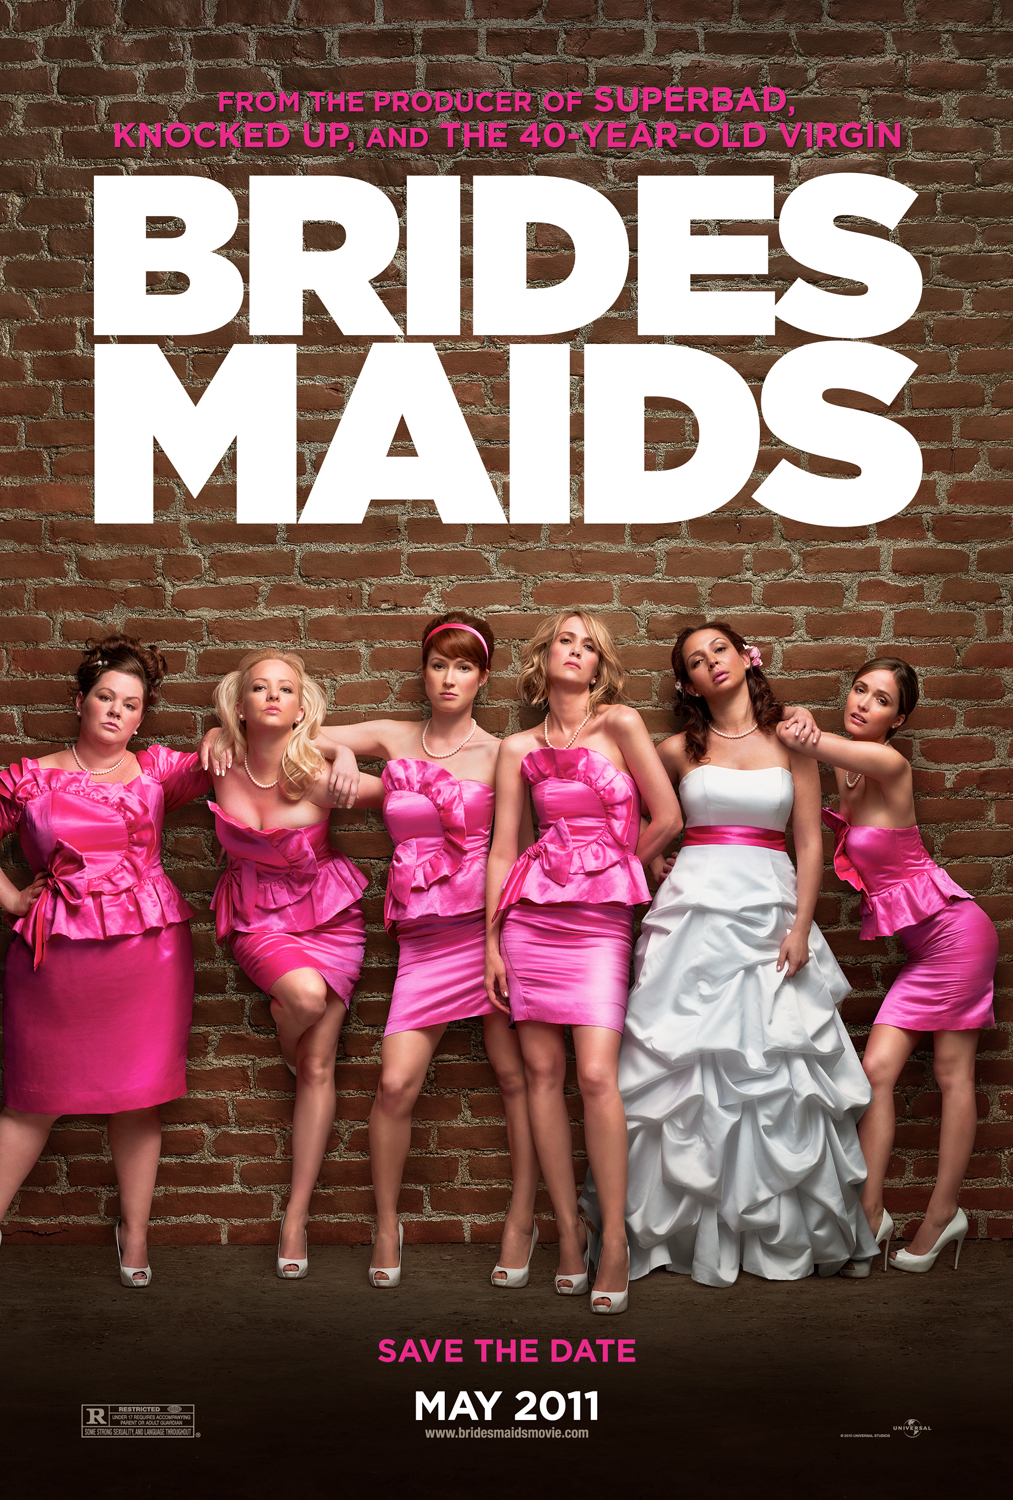 http://collider.com/wp-content/uploads/bridesmaids-movie-poster-large.jpg